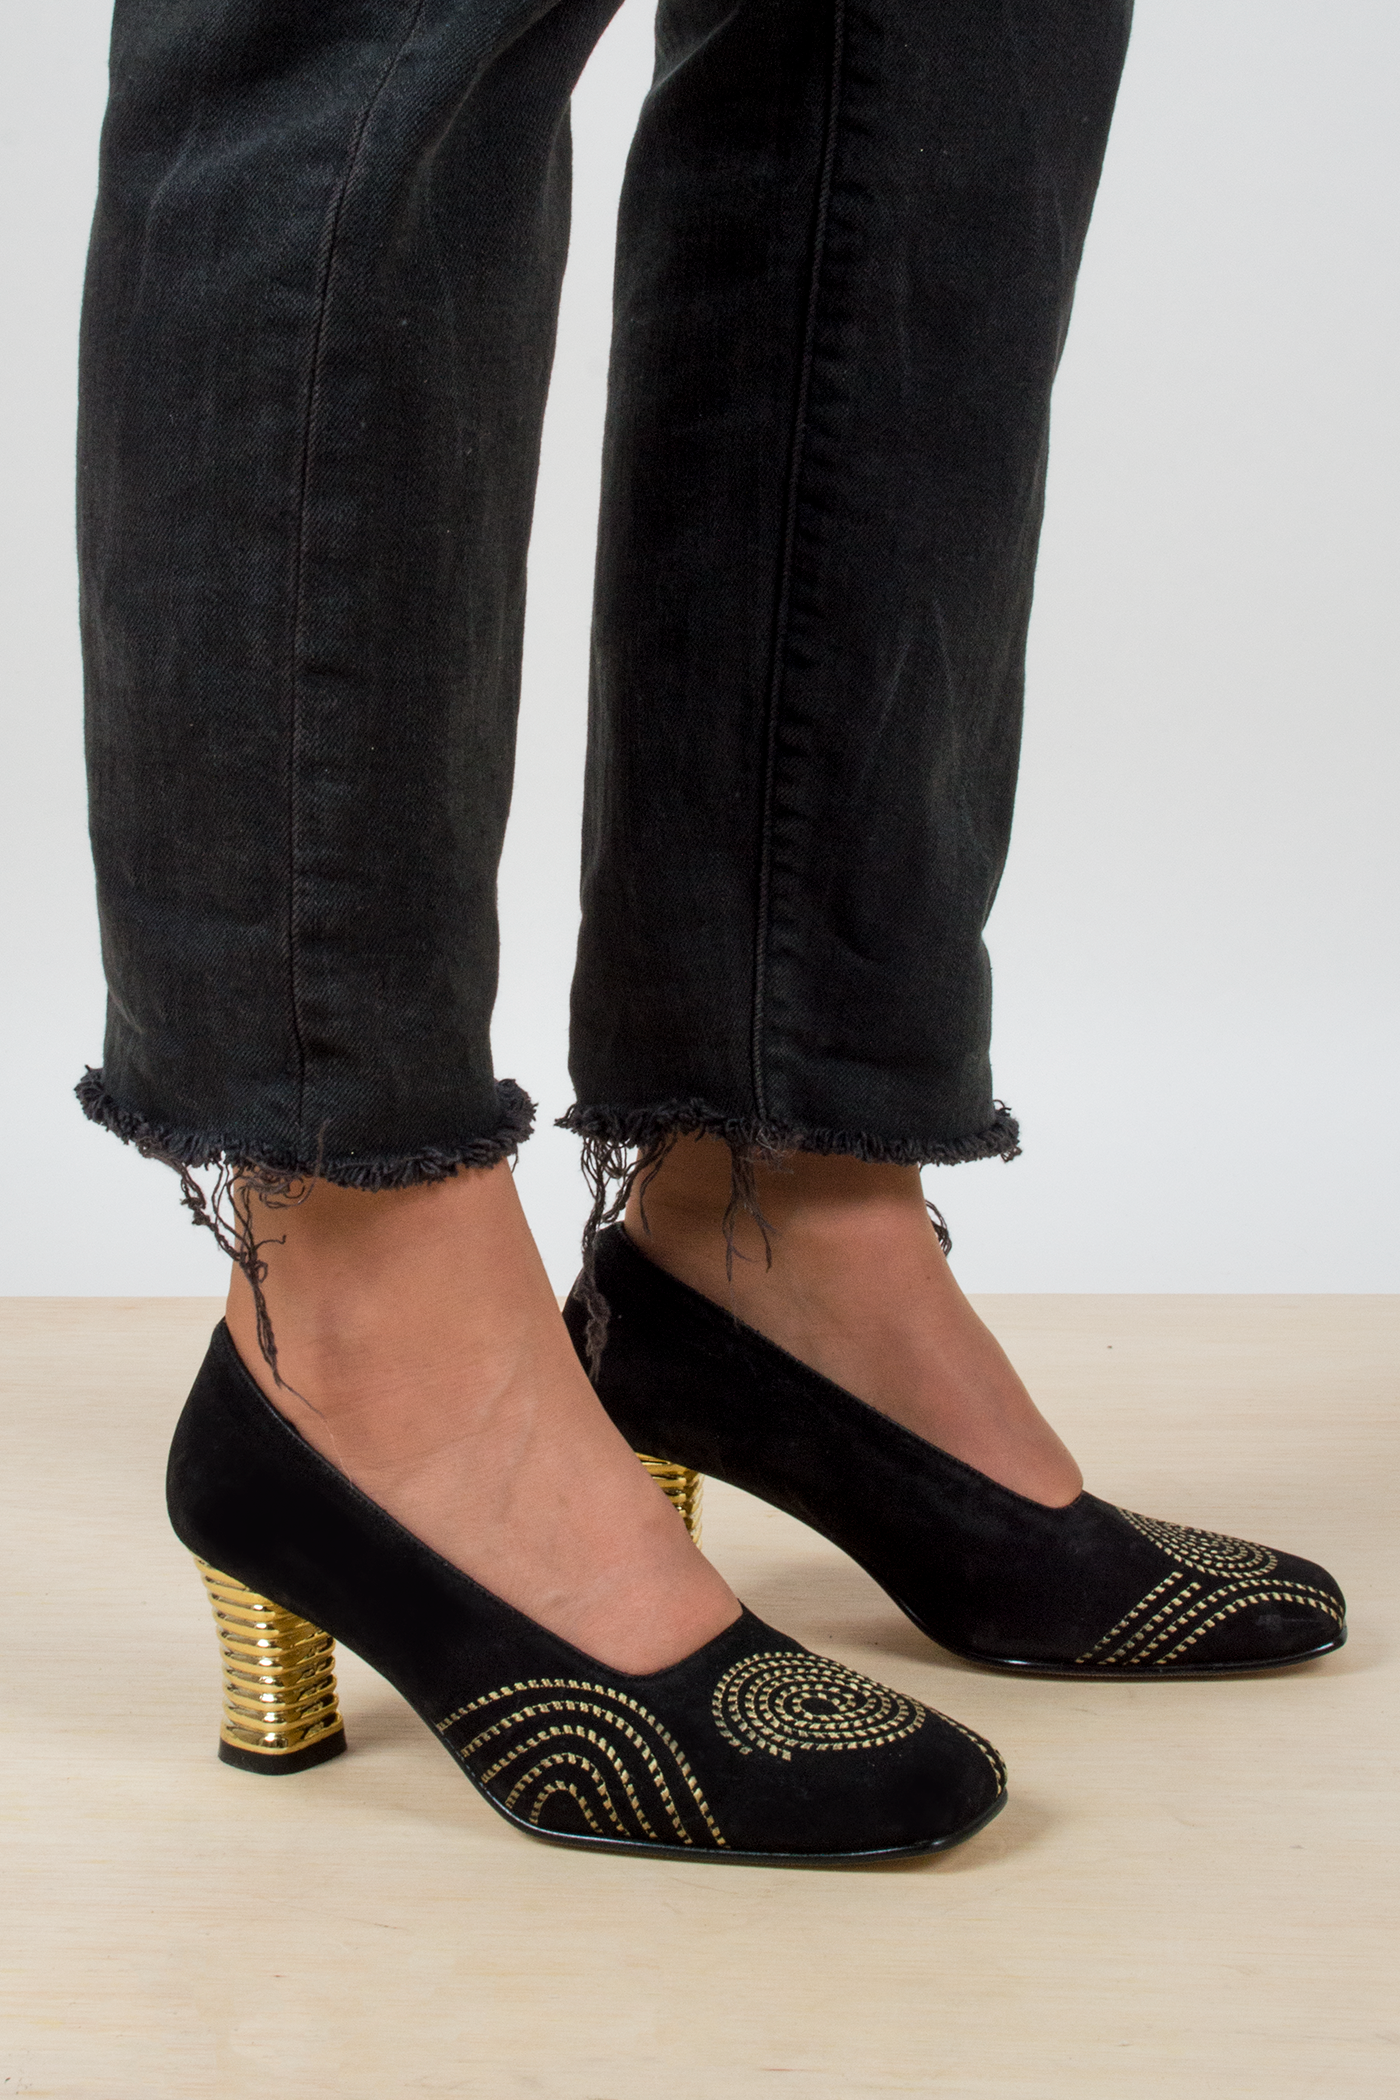 vintage velvet and gold pumps